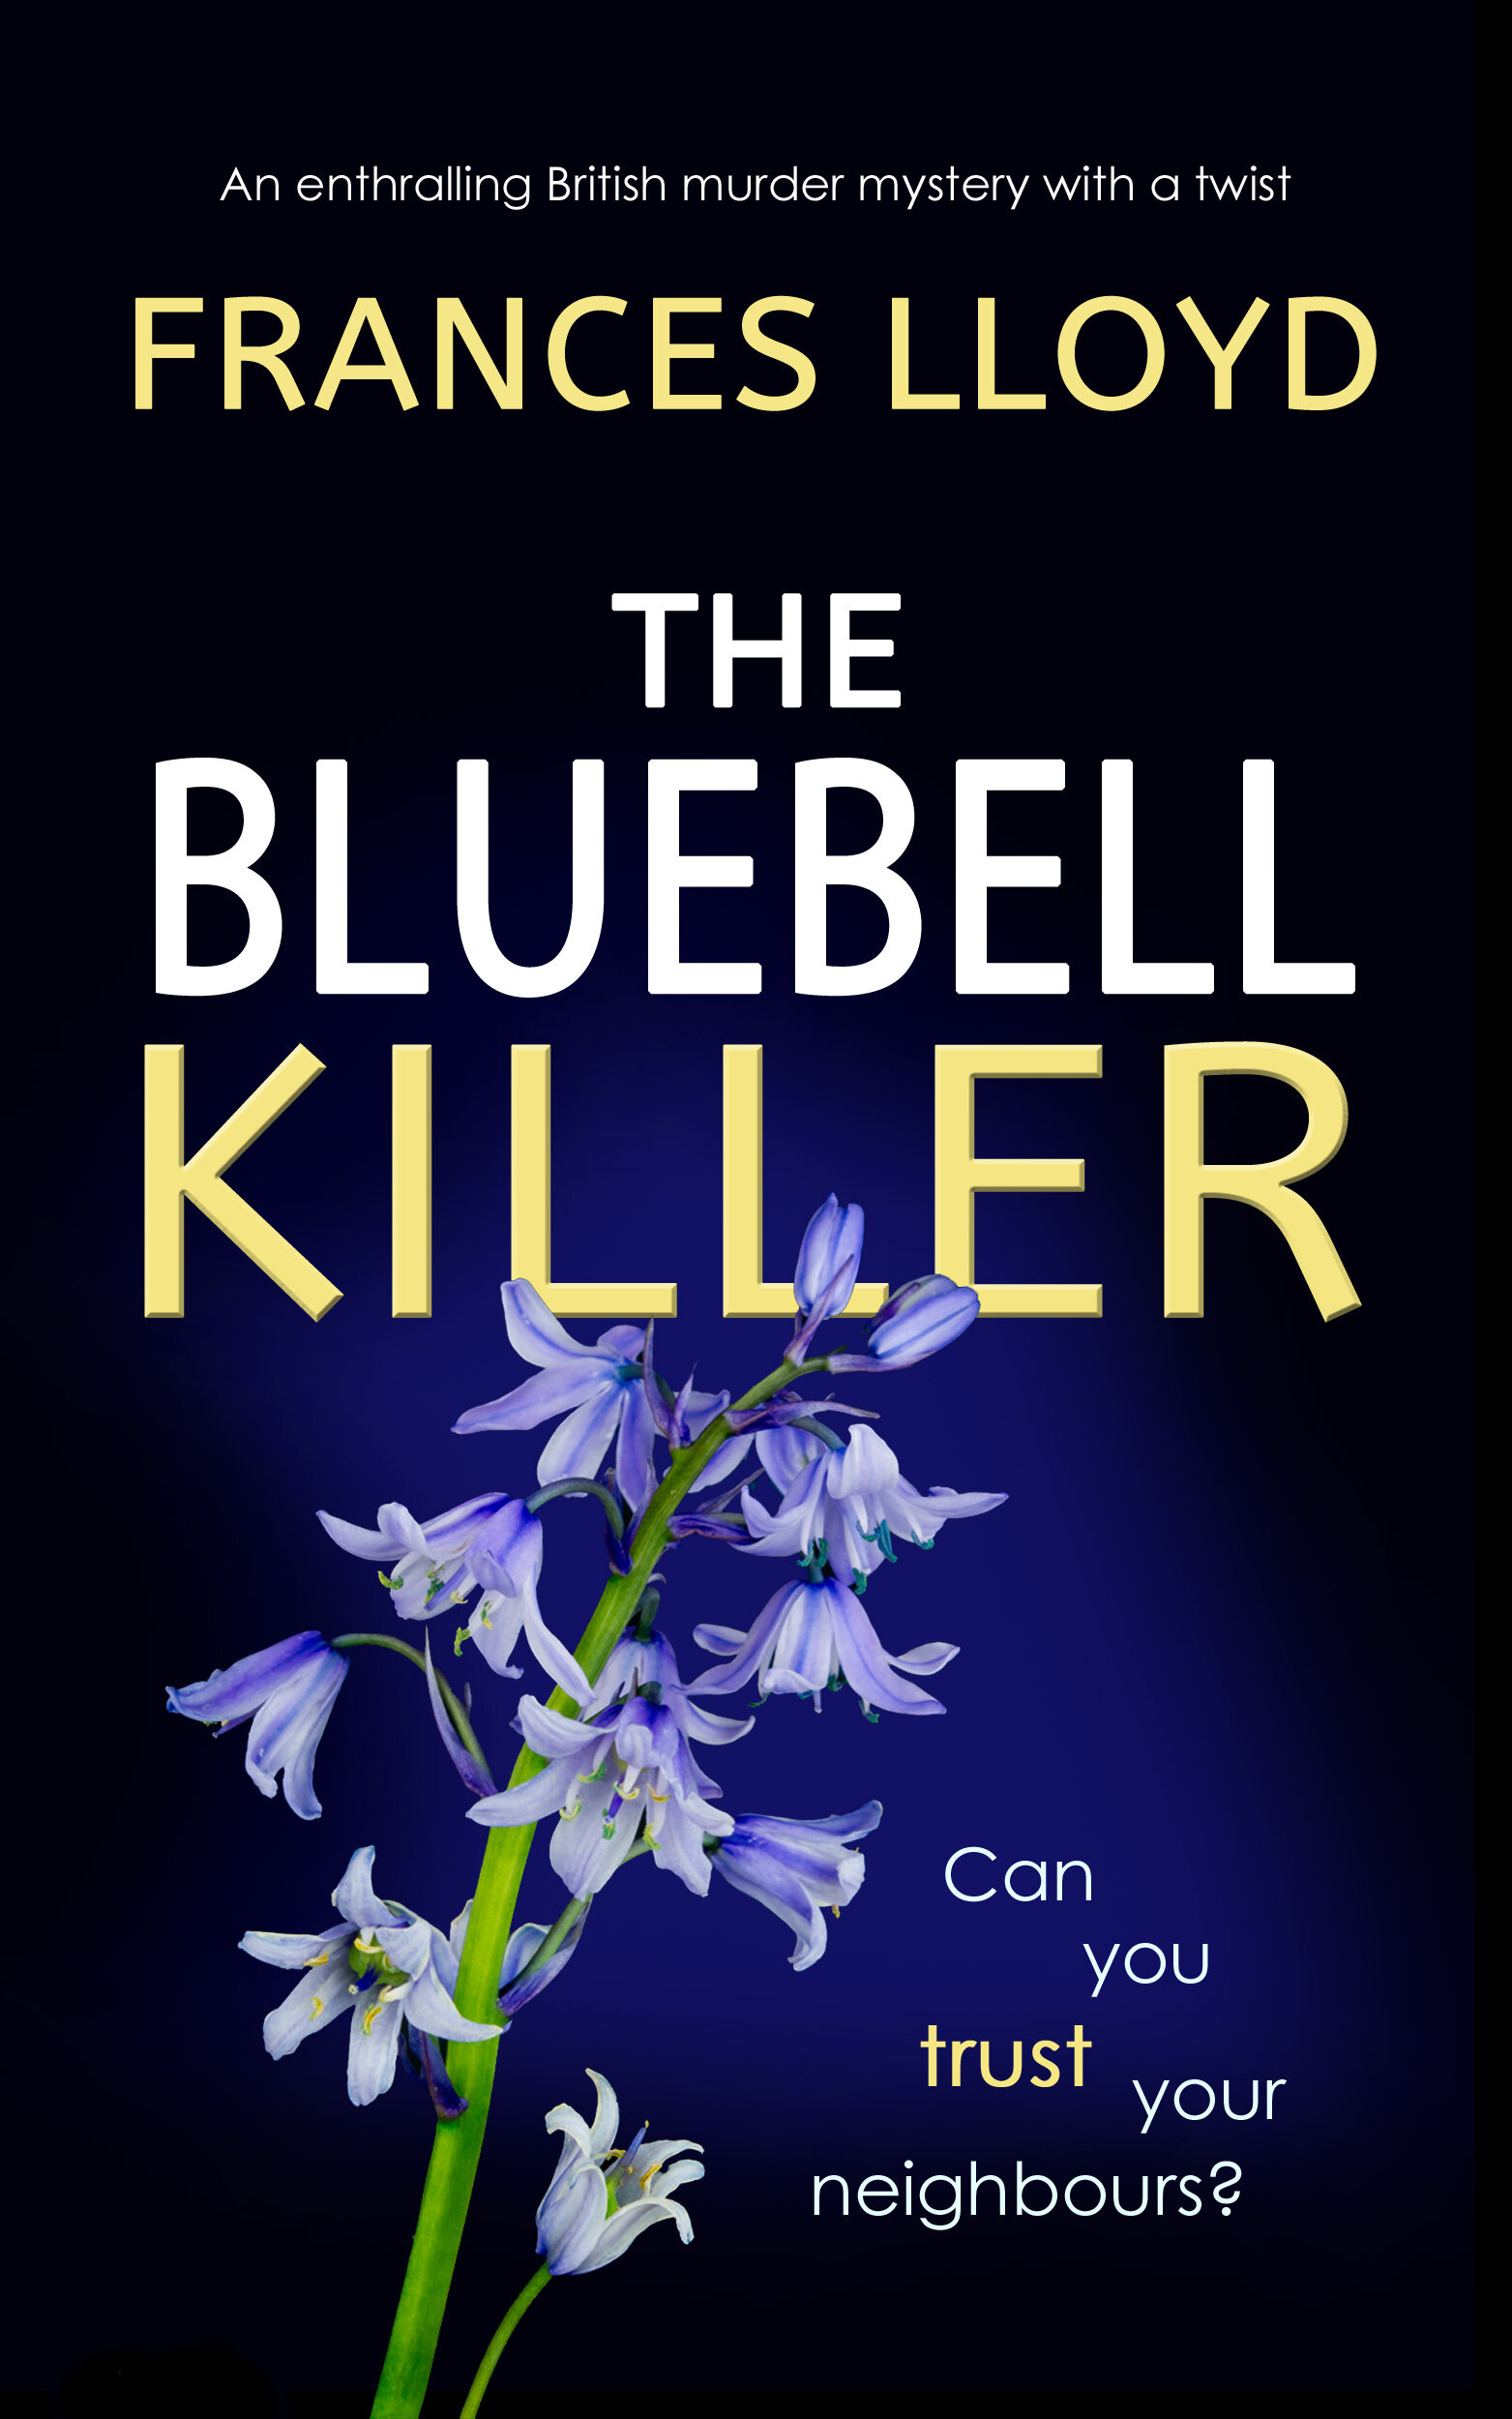 The Bluebell Killer publish.jpg